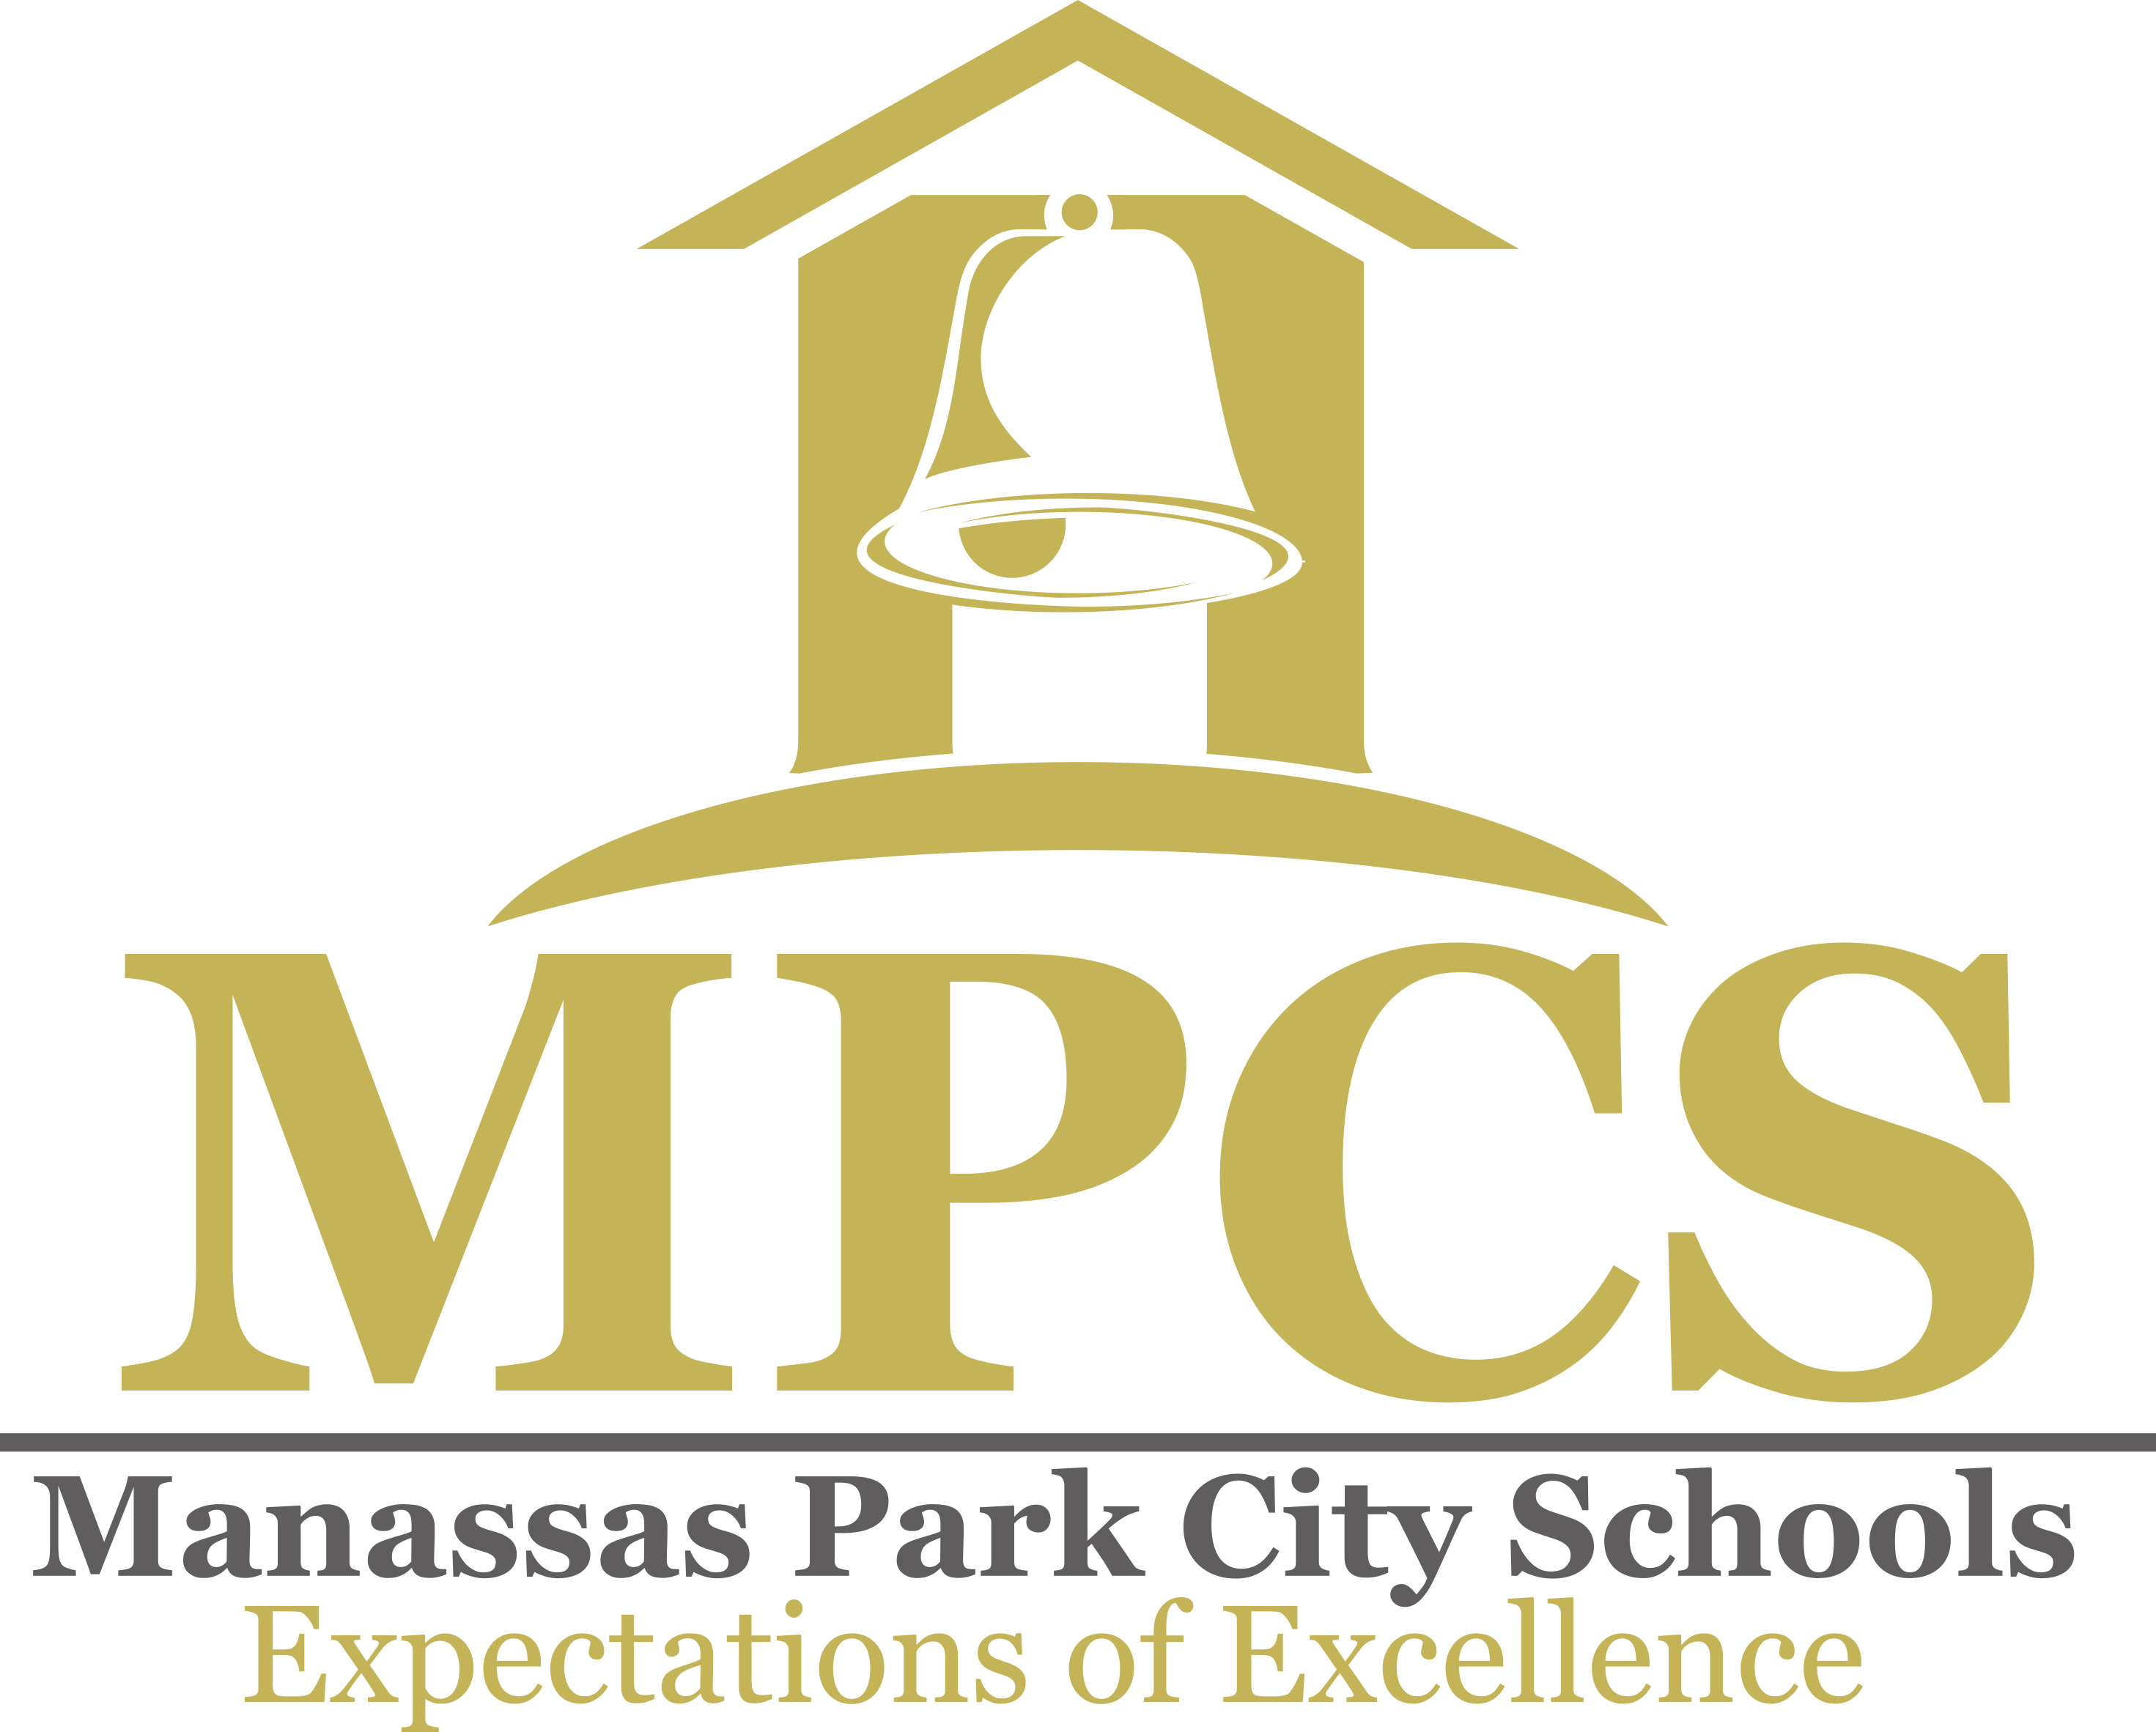 Manassas Park City Sch District